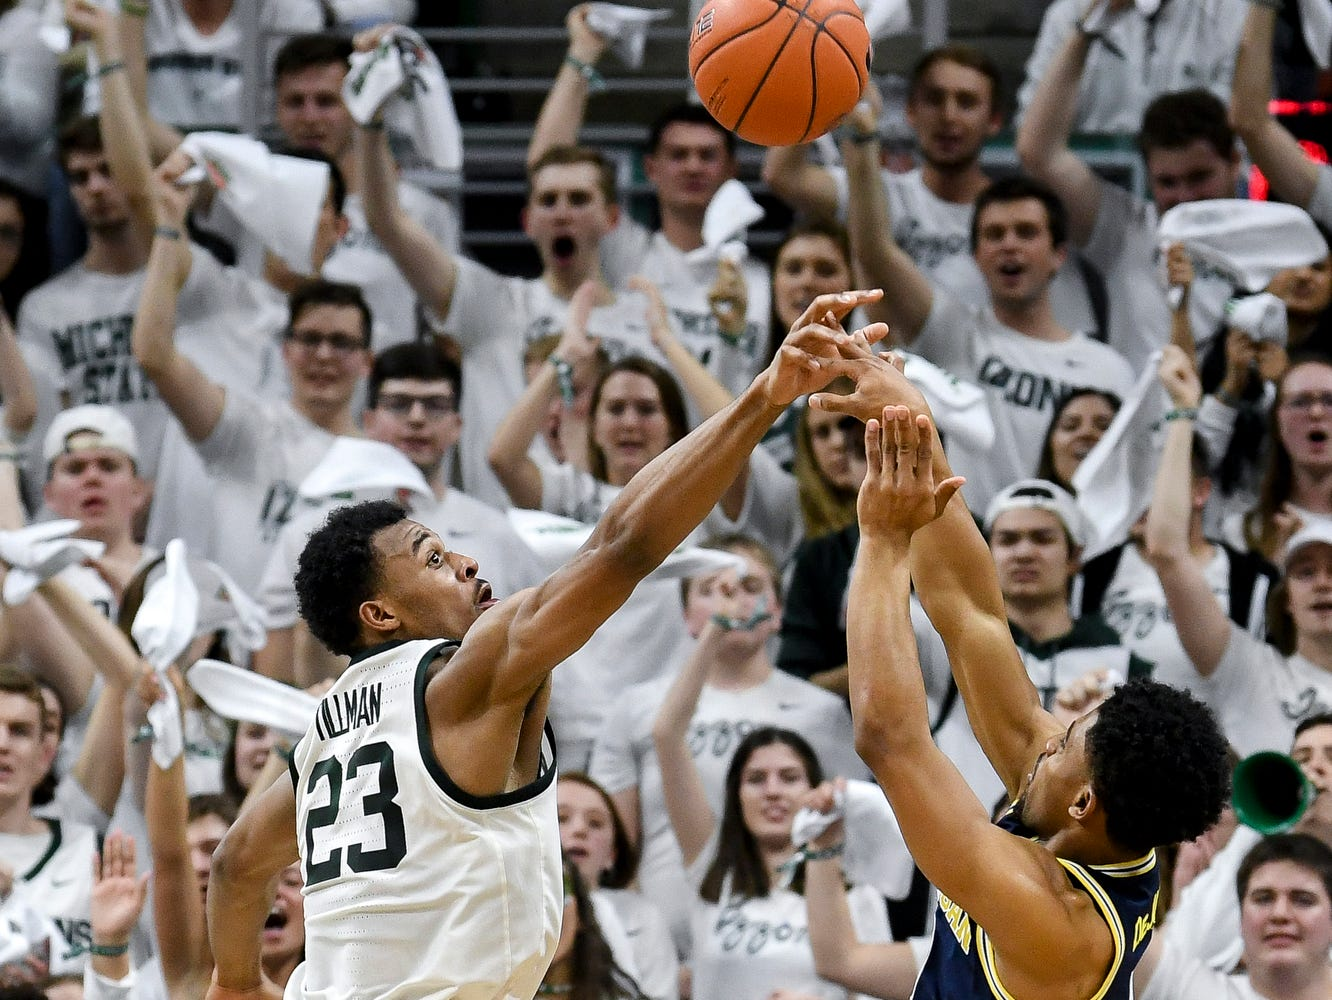 Michigan State's Xavier Tillman, left, blocks a shot by Michigan's David DeJulius during the first half on Saturday, March 9, 2019, at the Breslin Center in East Lansing.